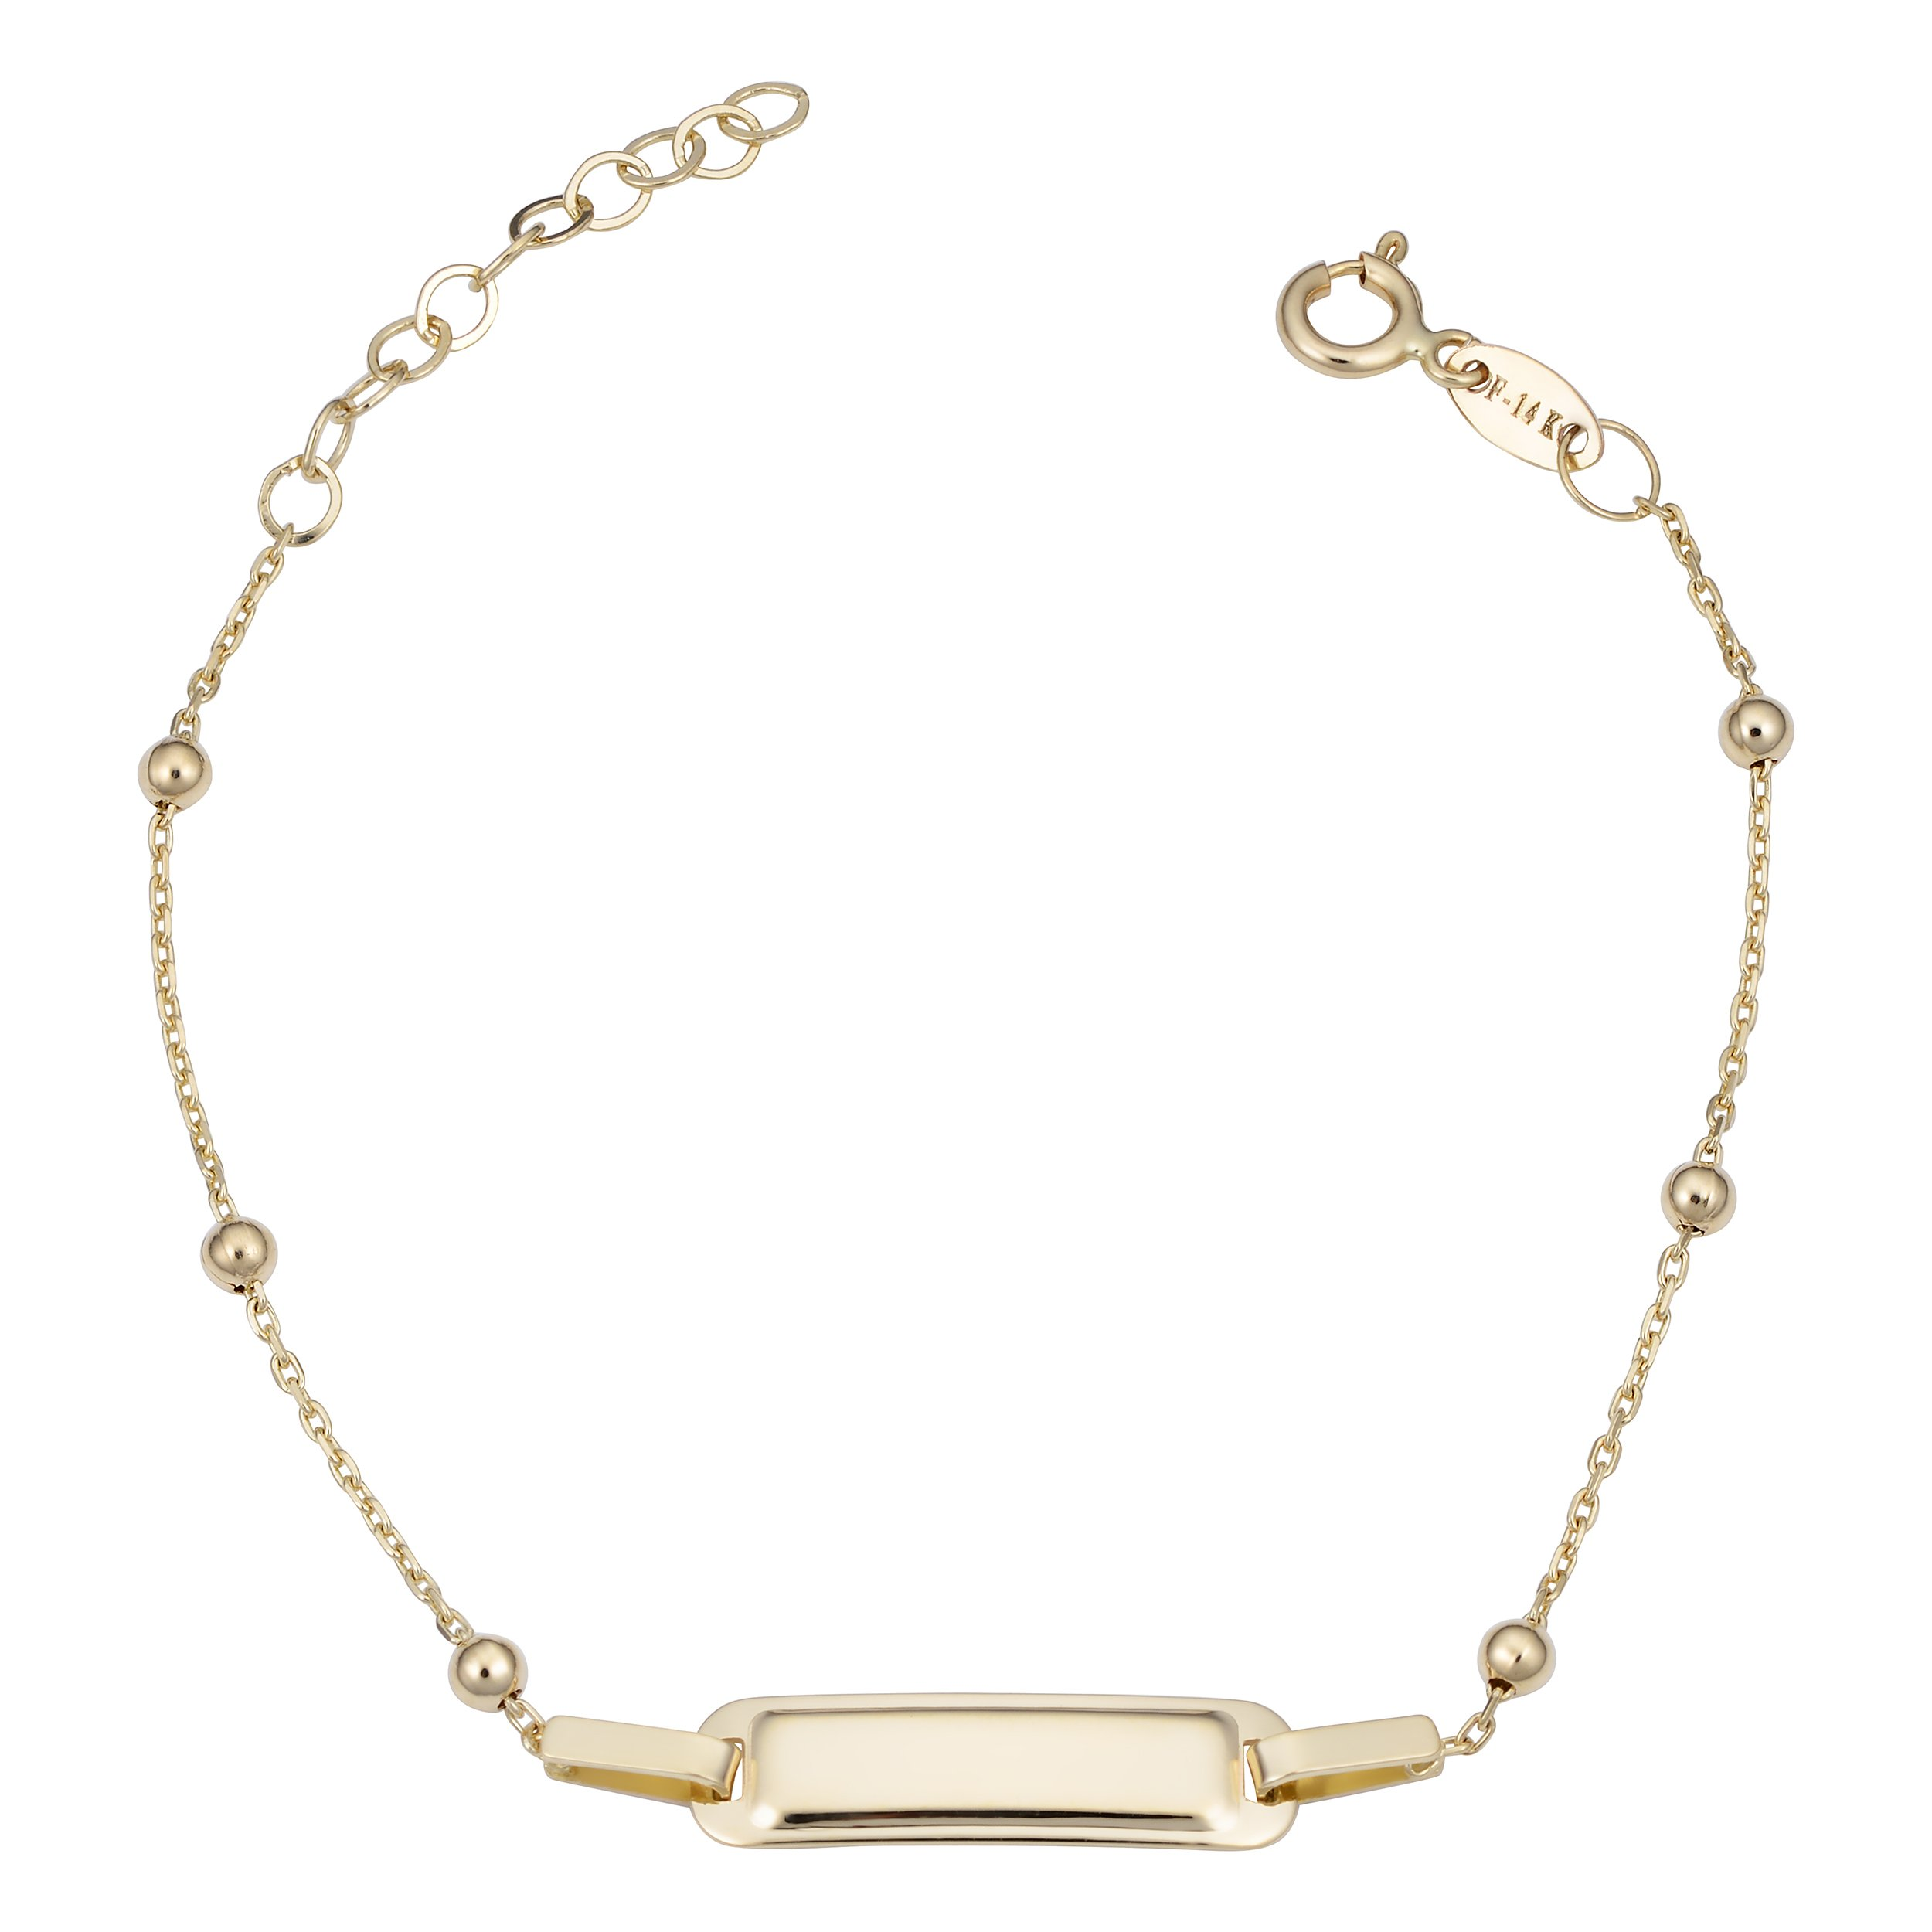 14k Yellow Gold Bead Station Id Bracelet (adjusts from 5.5 to 6.5 inch)